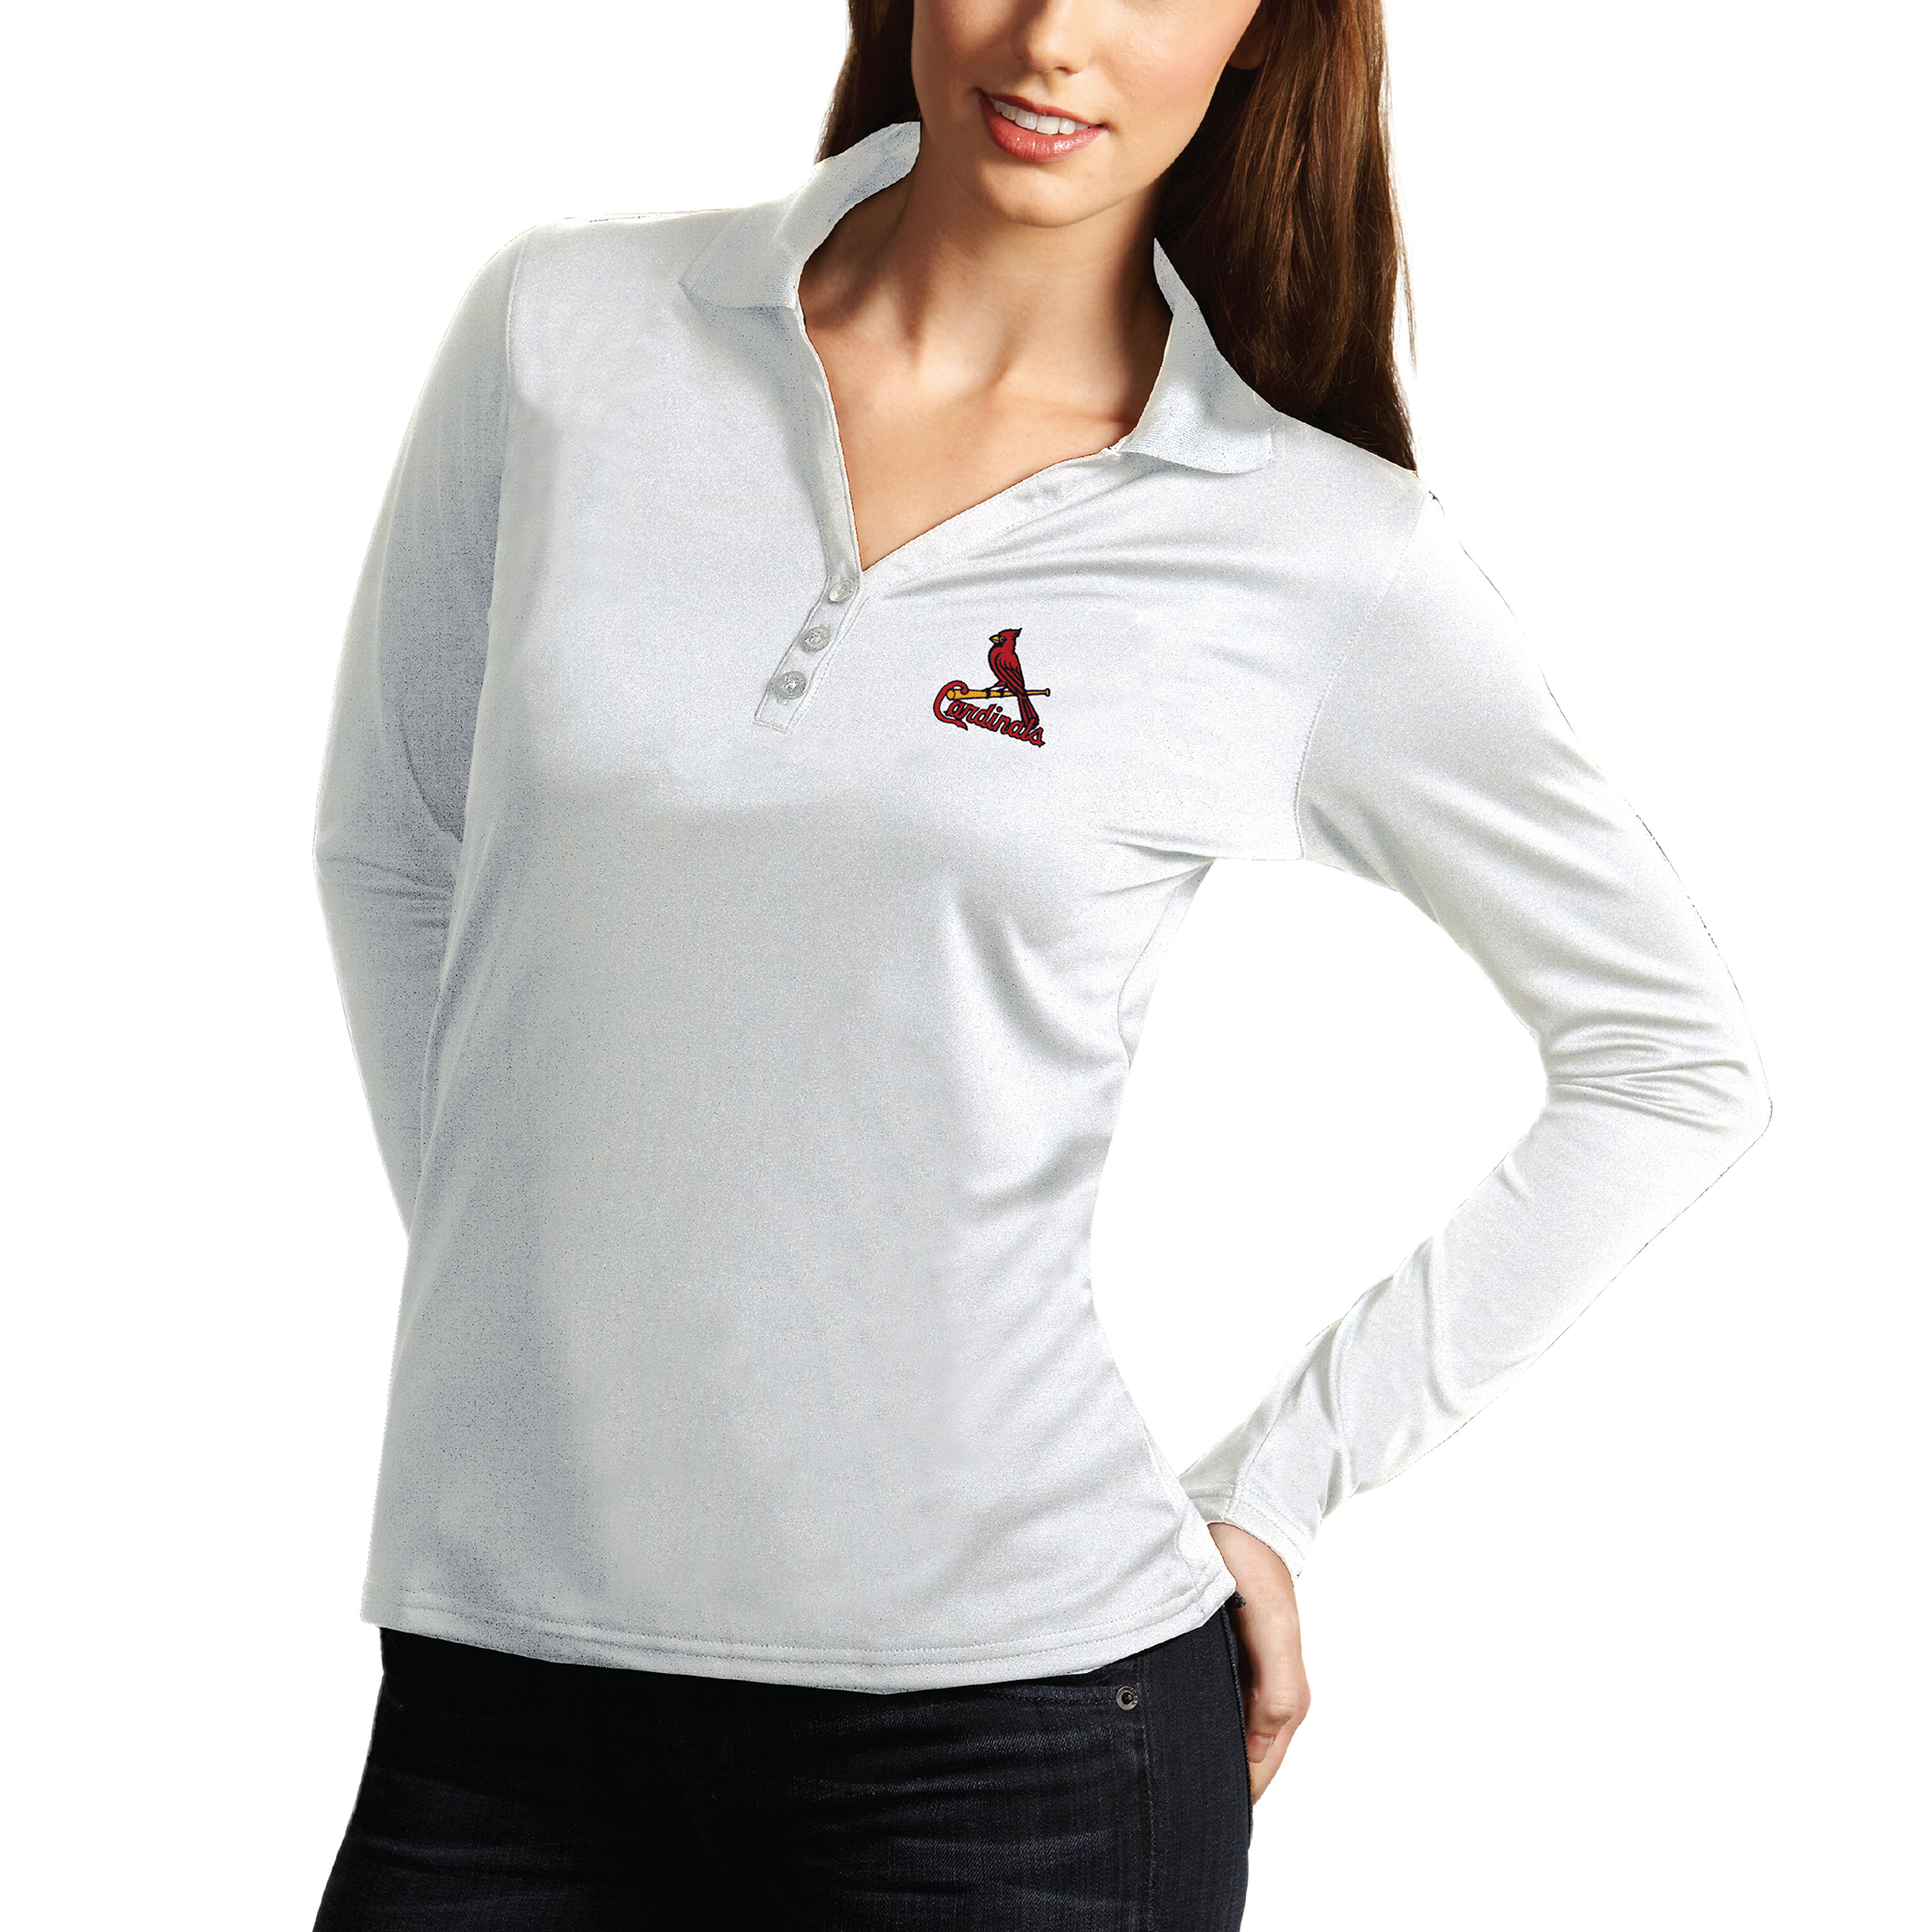 St. Louis Cardinals Antigua Women's Desert Dry Xtra Lite Exceed Long Sleeve Polo - White